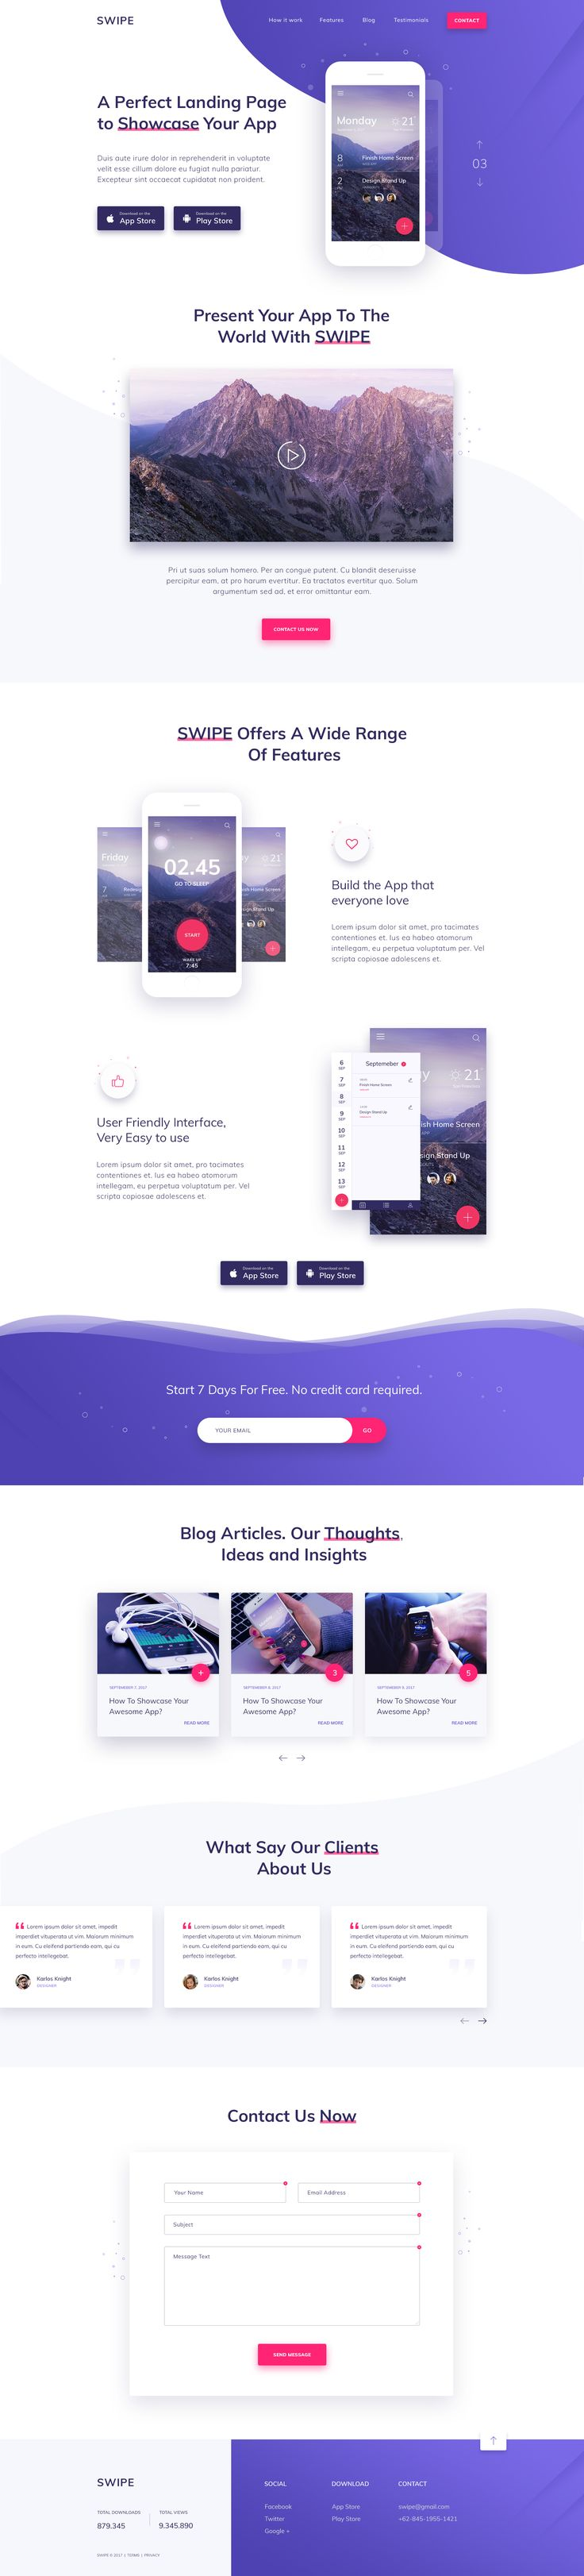 A Perfect Landing Page to Showcase Your App